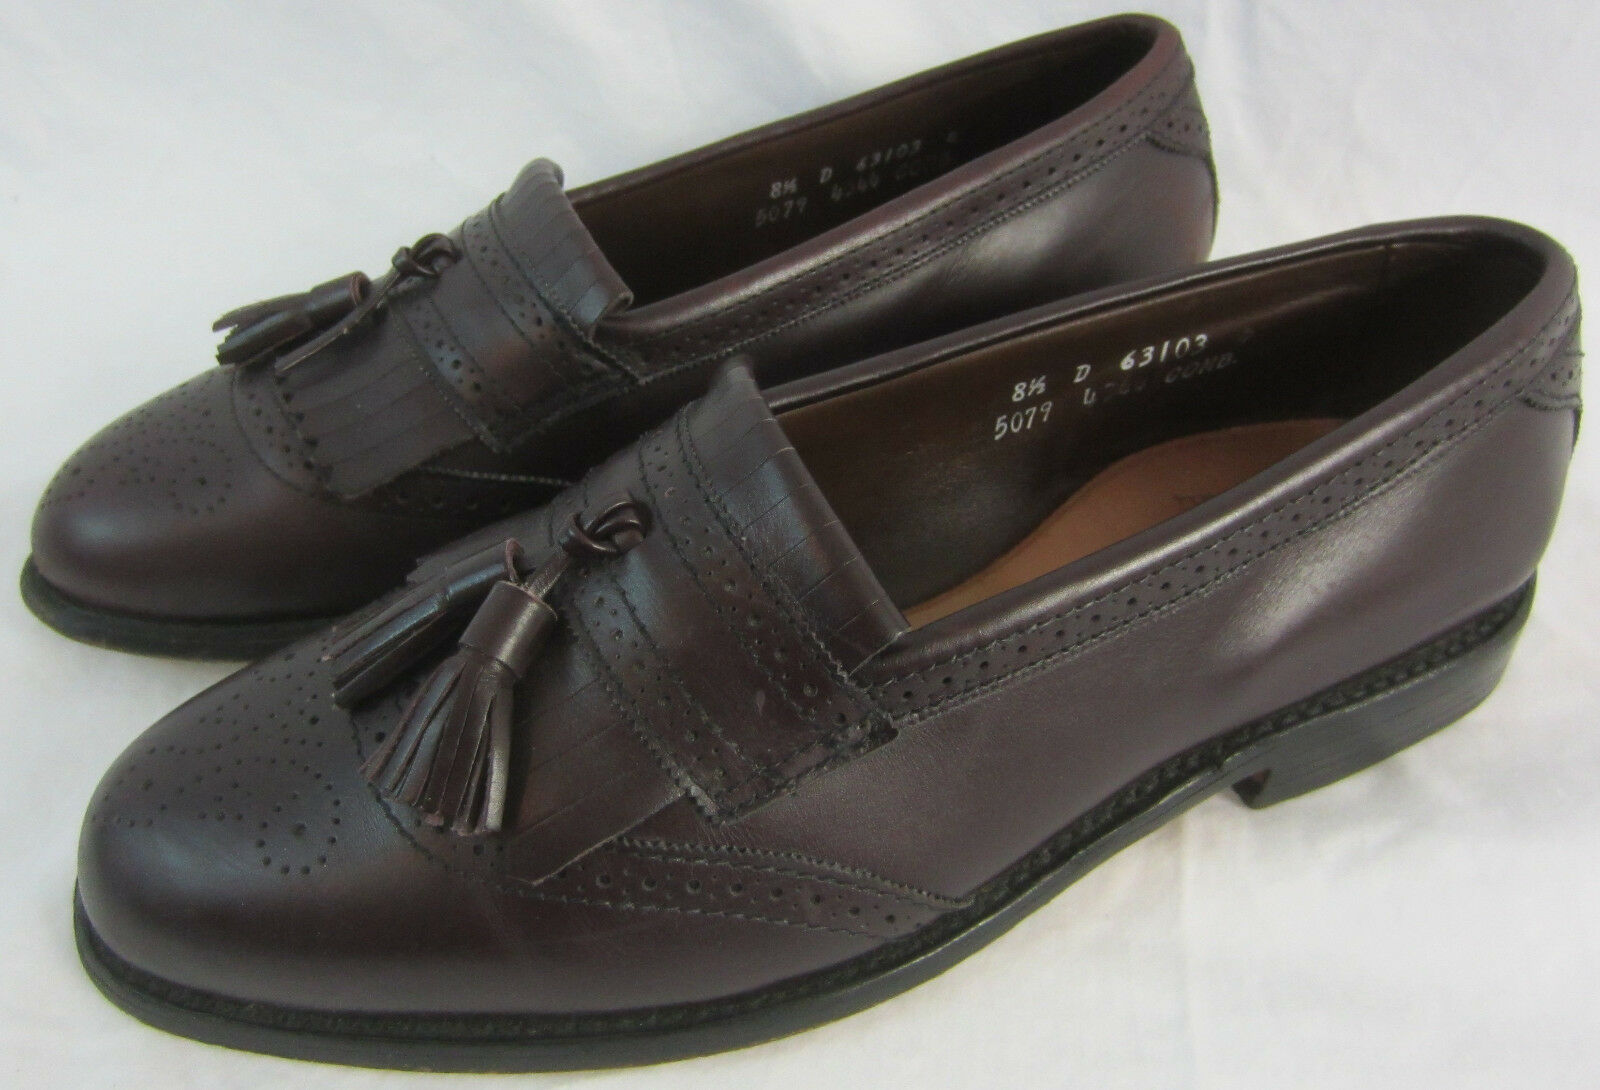 Allen Edmonds  Bridgeton  Burgundy Tassel Loafers Men's shoes 8.5D - Made in USA